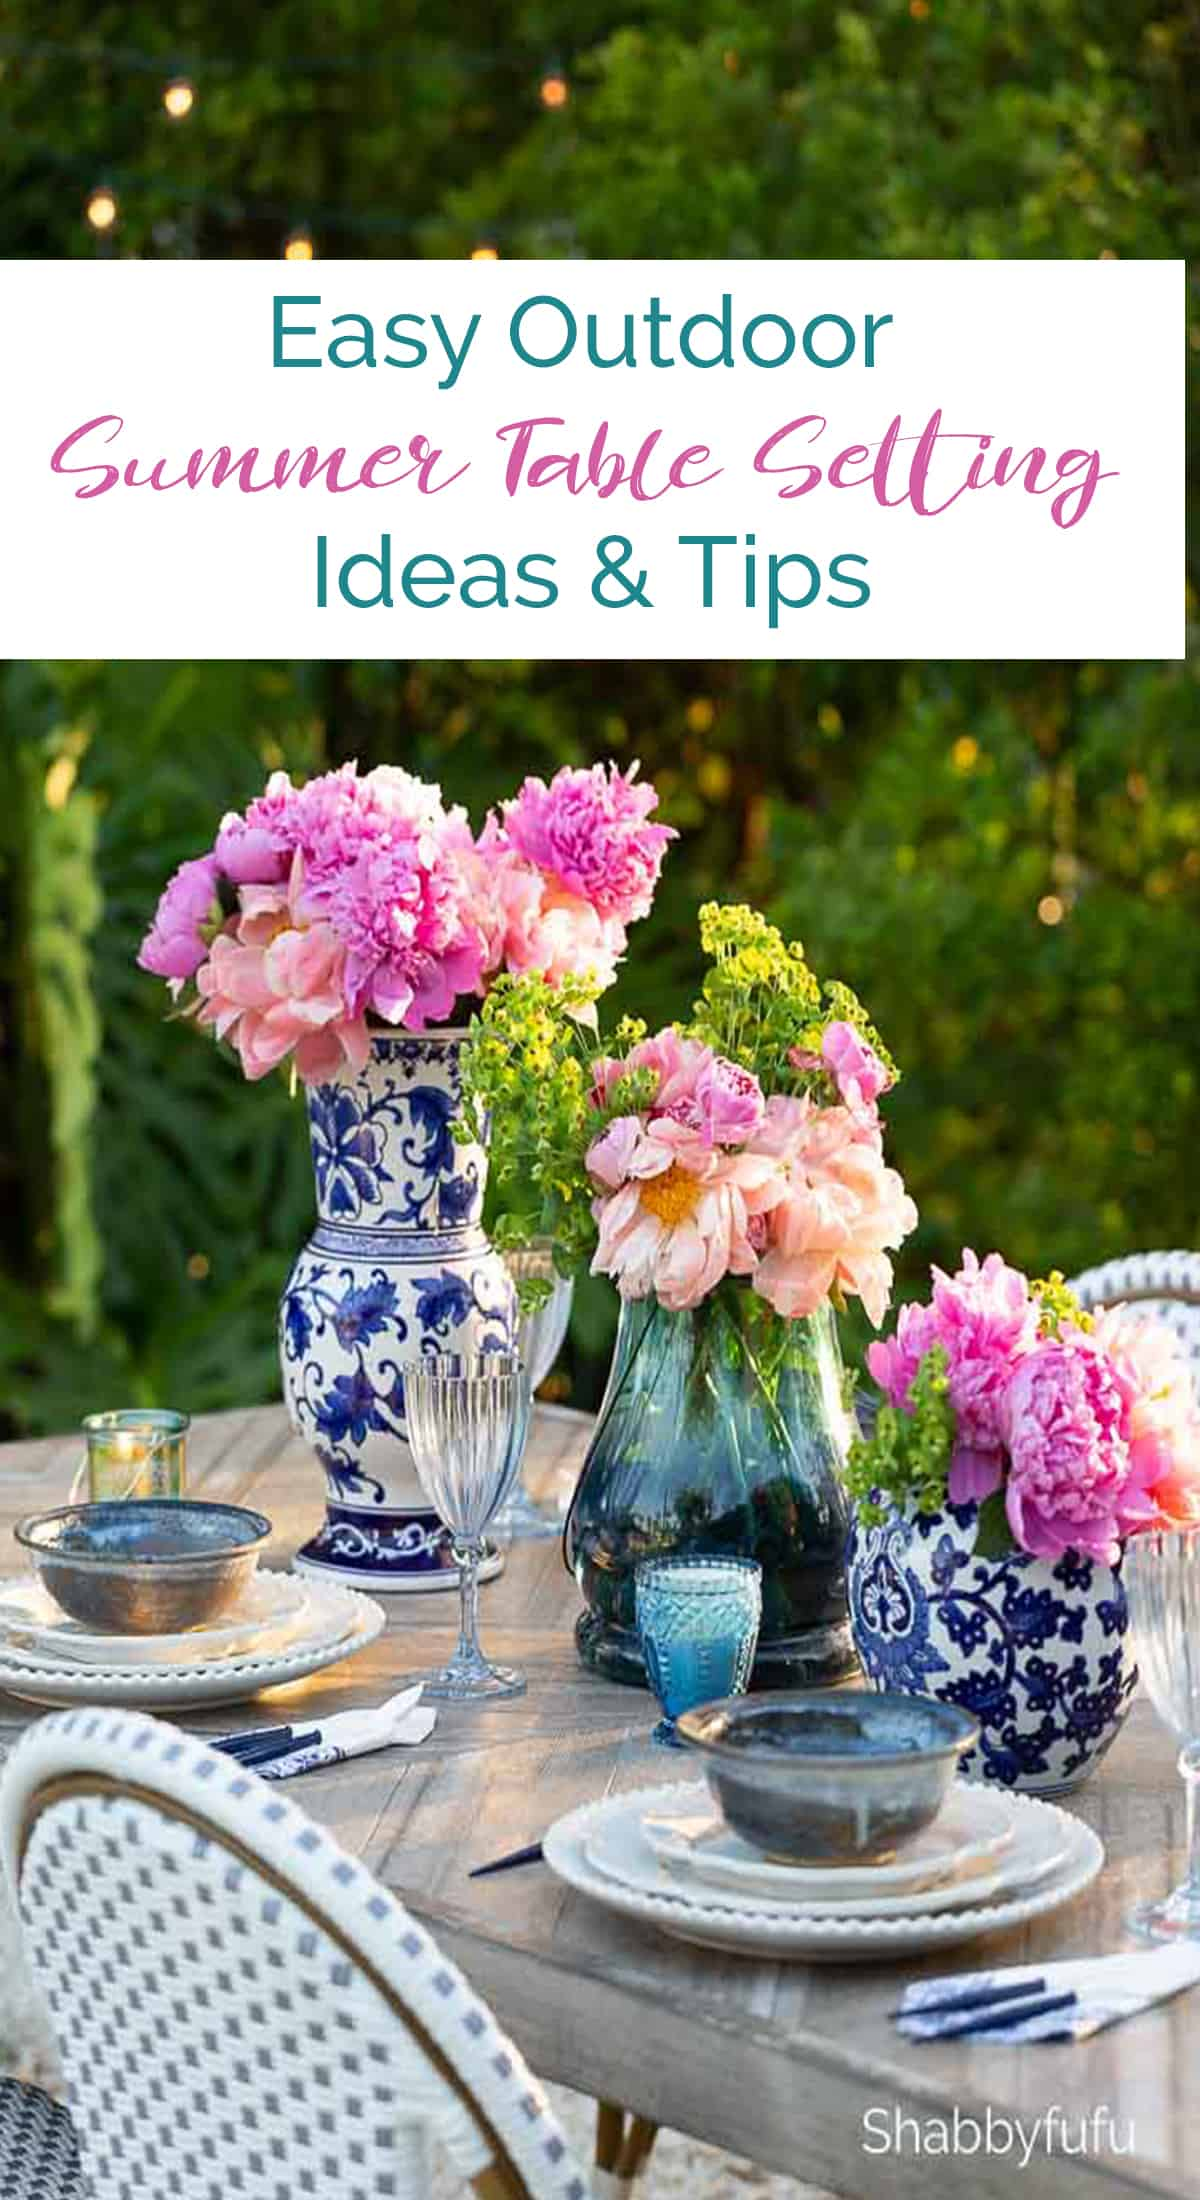 Easy Outdoor Summer Table Setting - Ideas & Tips